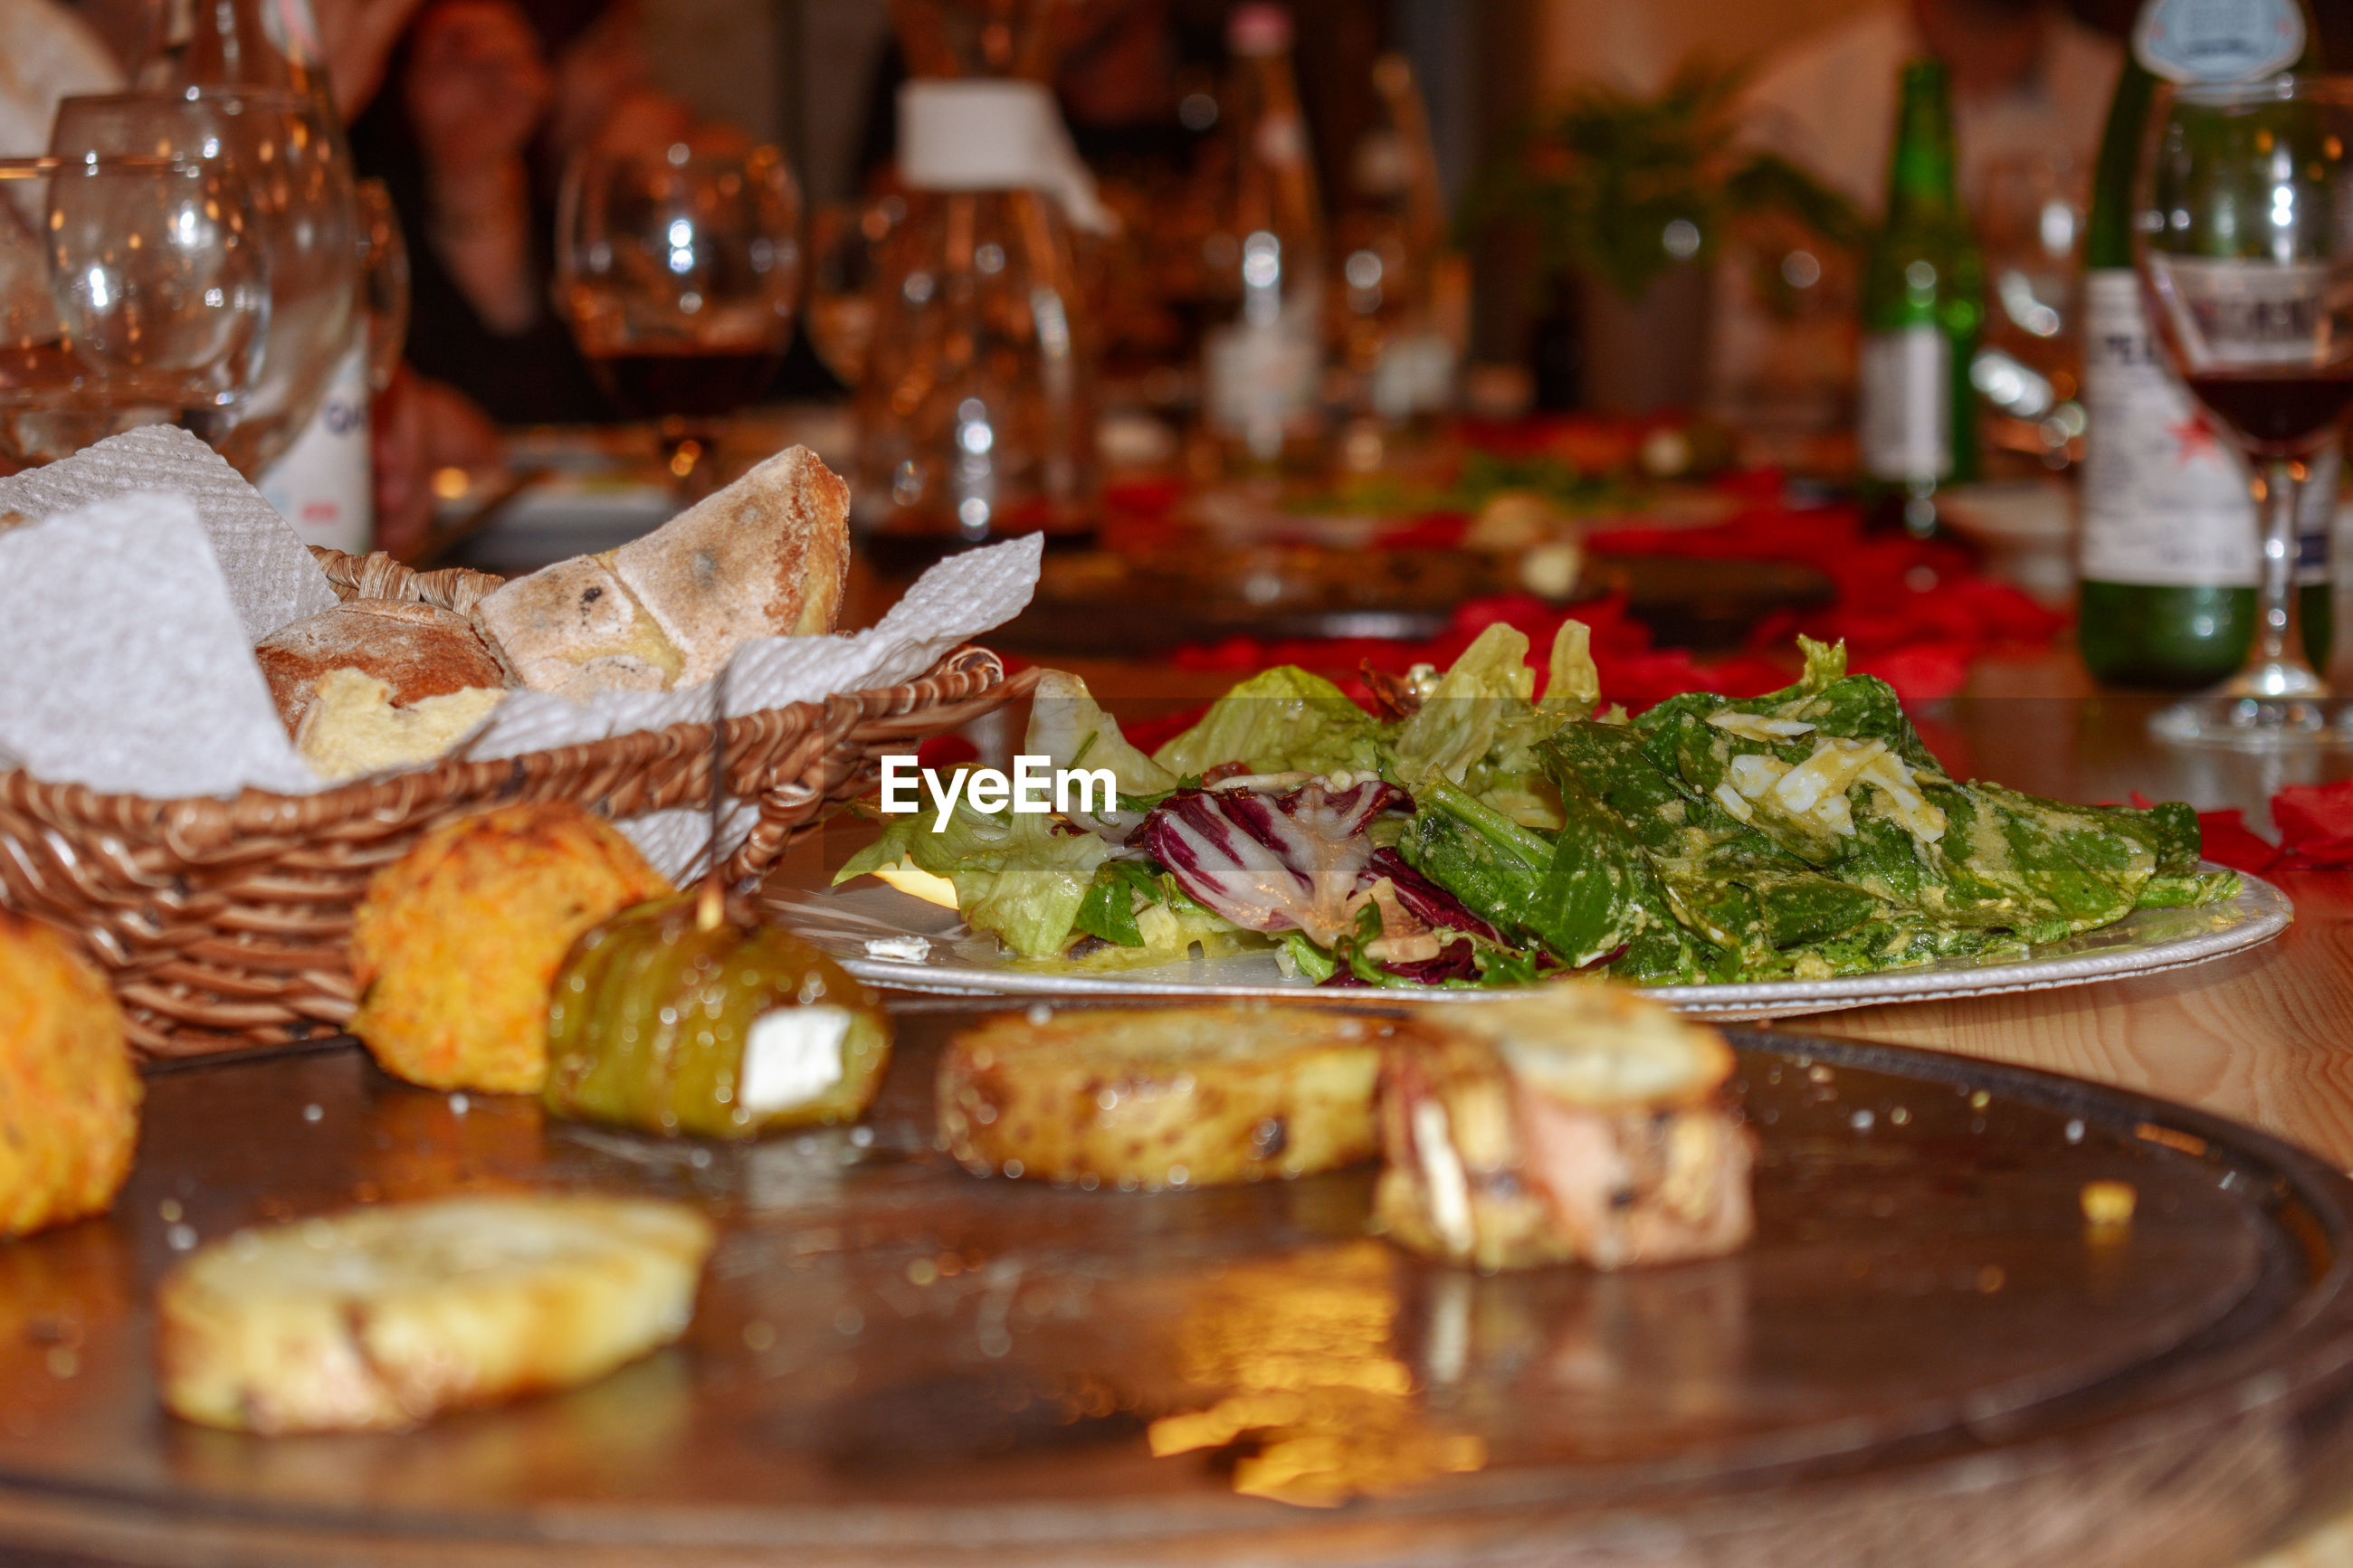 Close-up of meal served on table in restaurant